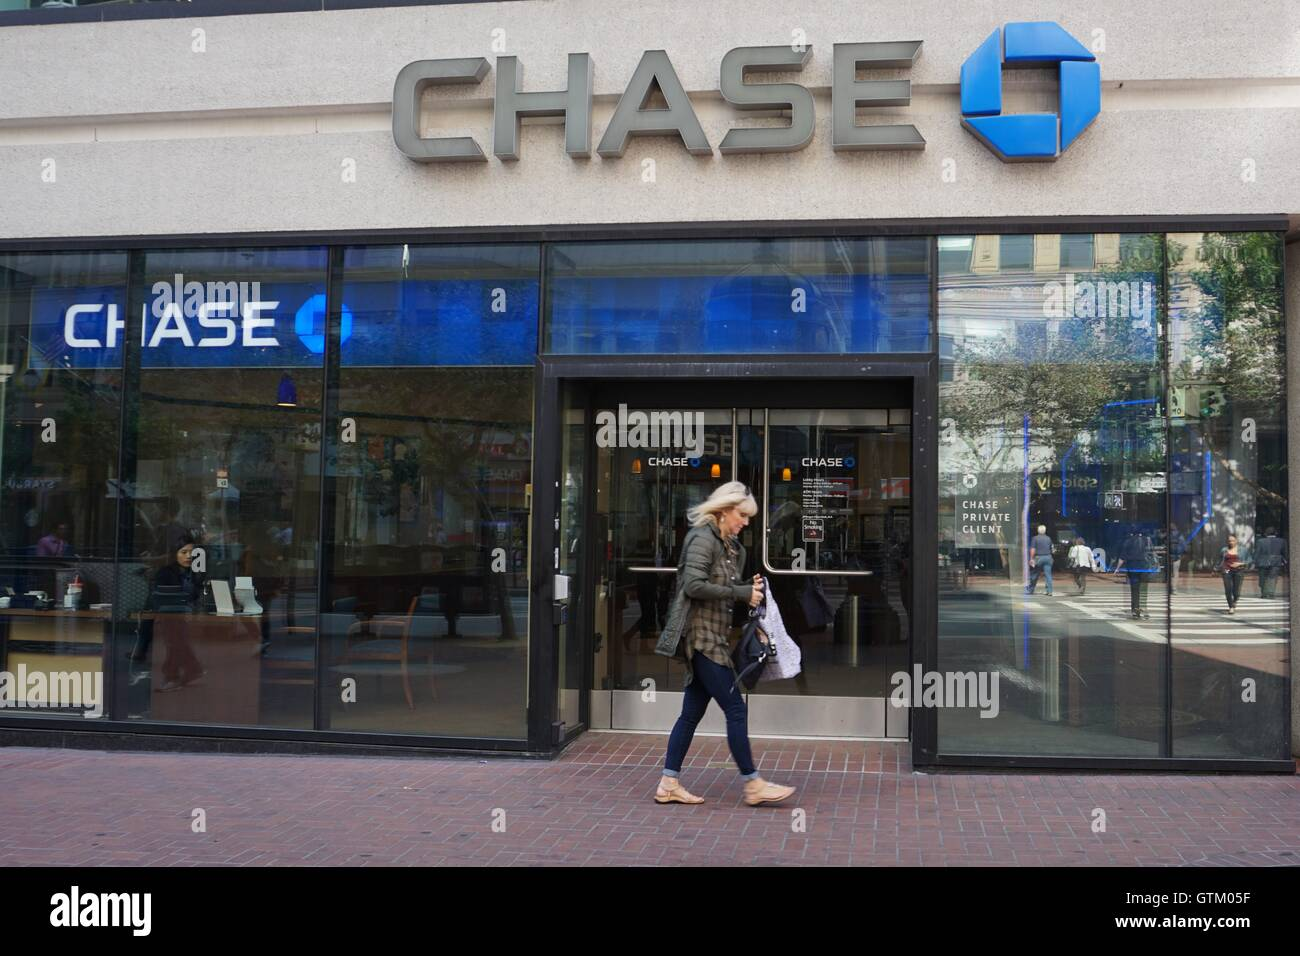 A woman walks by a Chase Bank storefront branch - Stock Image